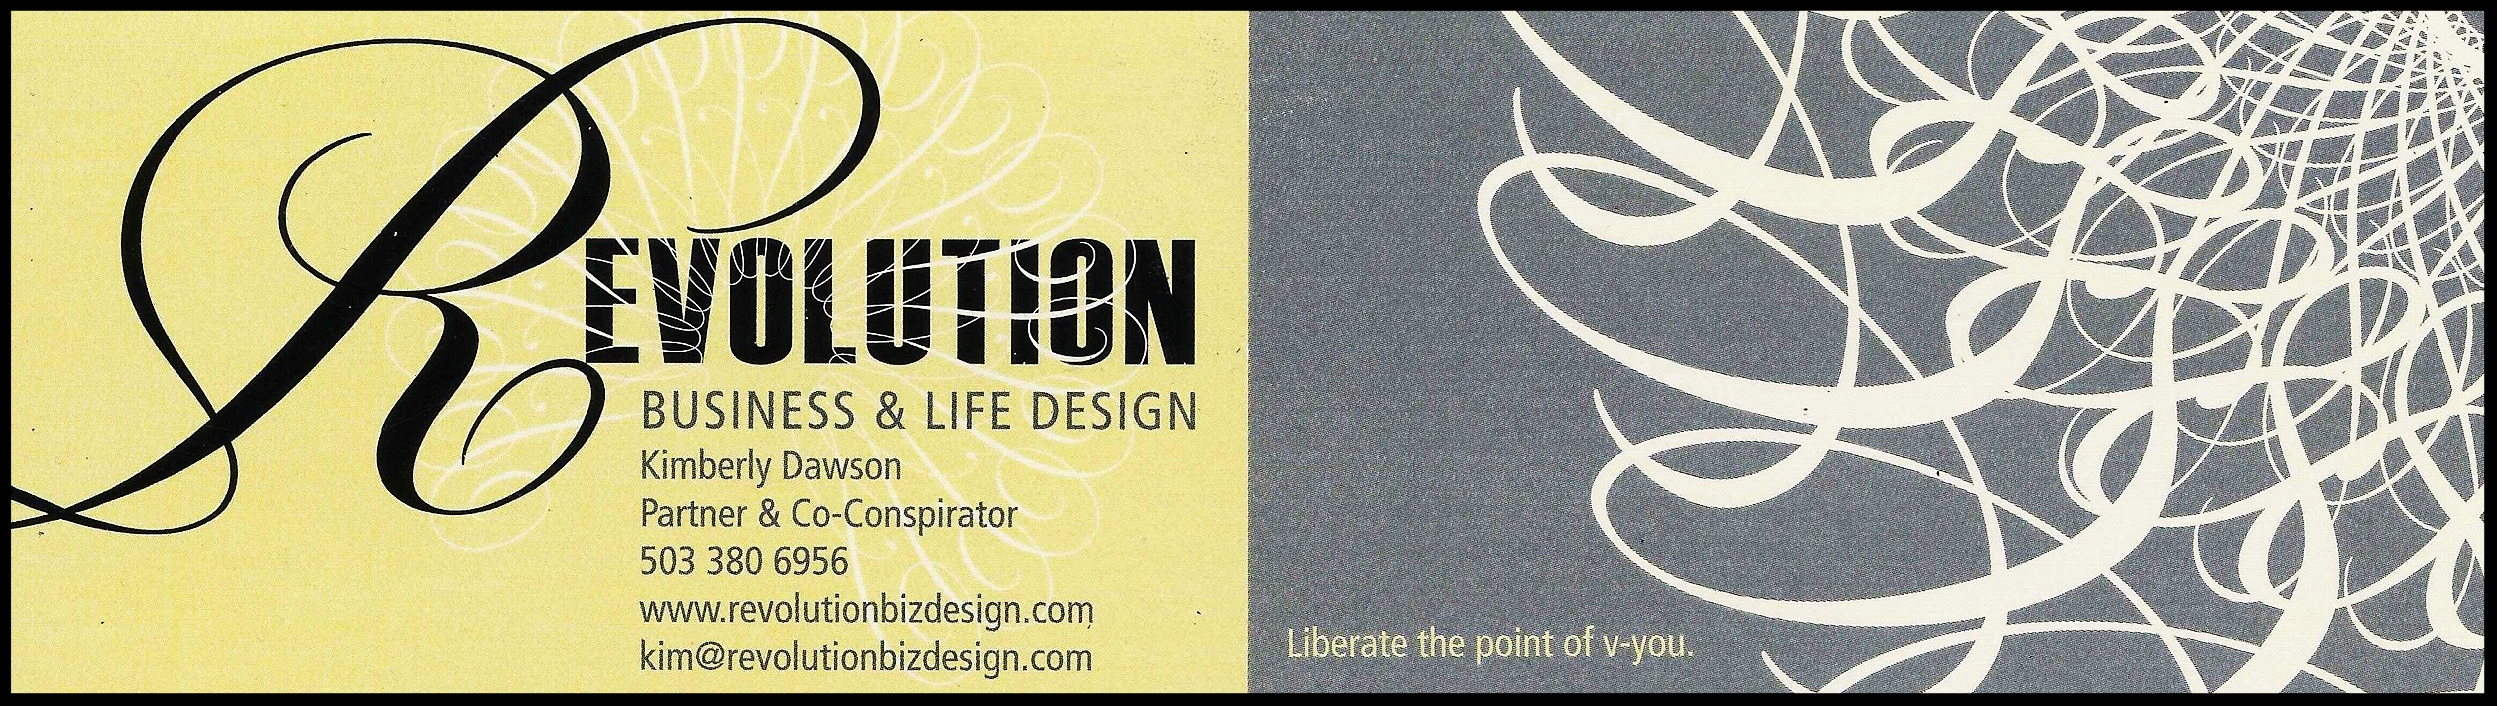 "In late 2013, the name of my business evolved to Revolution Business & Life Design, and the tagline became ""Liberate the point of v-you.""  The visual was intended to communicate the unfolding and interconnectedness of all our choices along our journey of evolution, that all revolve around a single point."